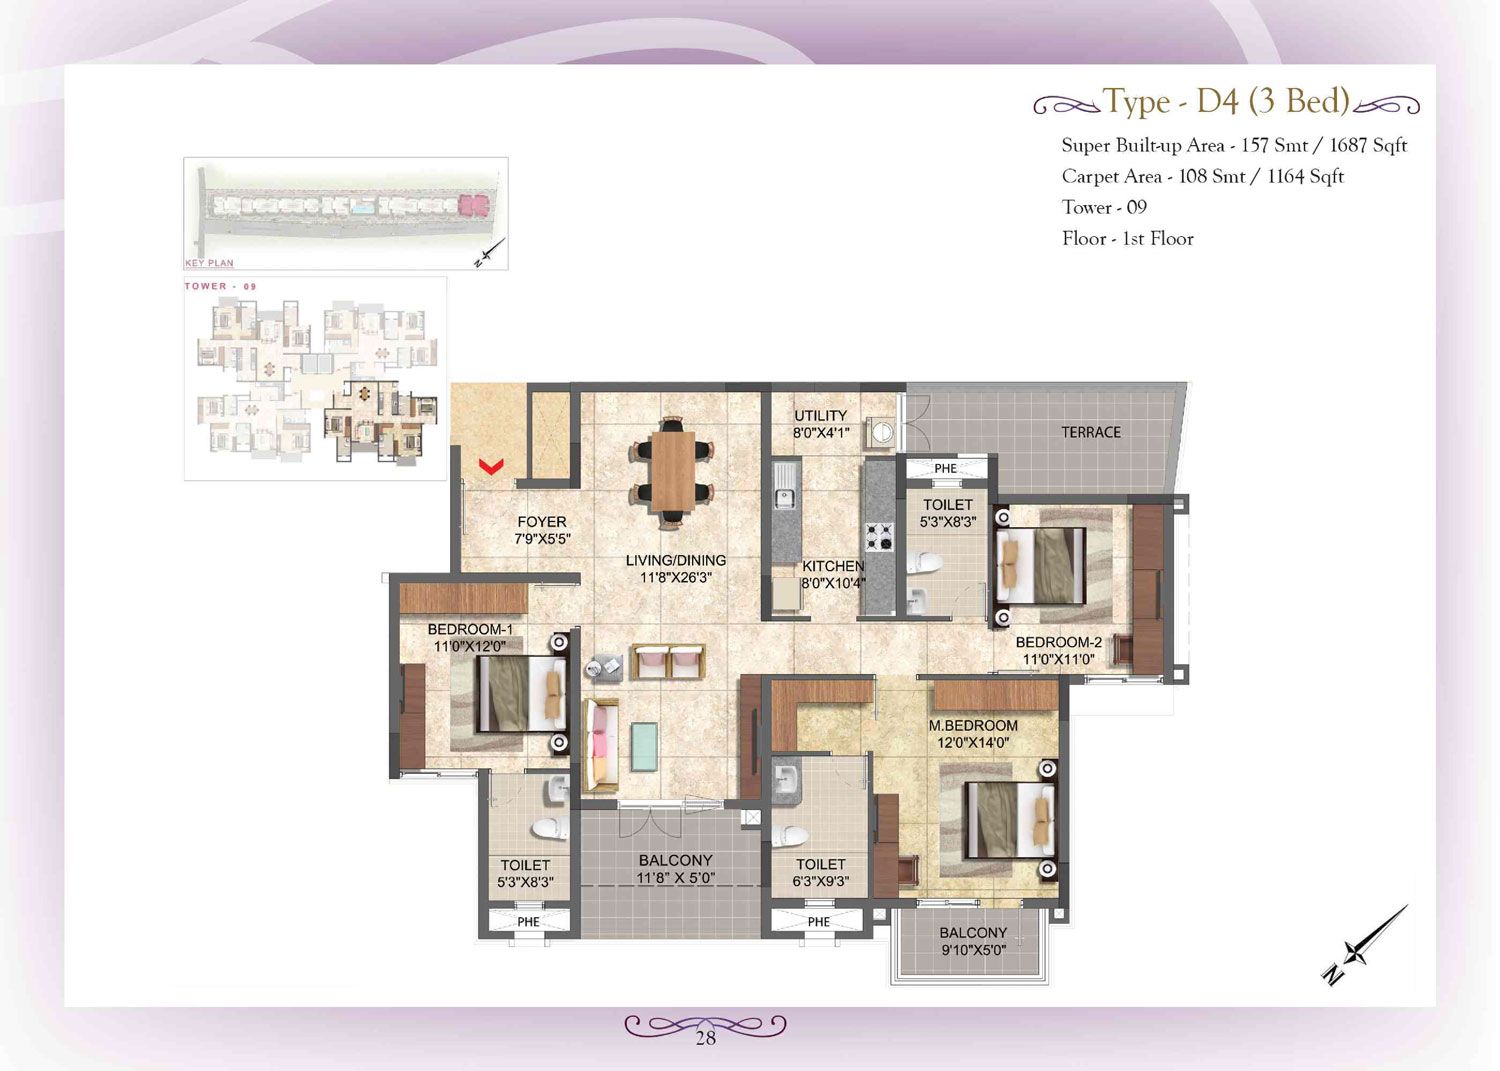 Type D4 - 3 Bed - 1687 Sq Ft